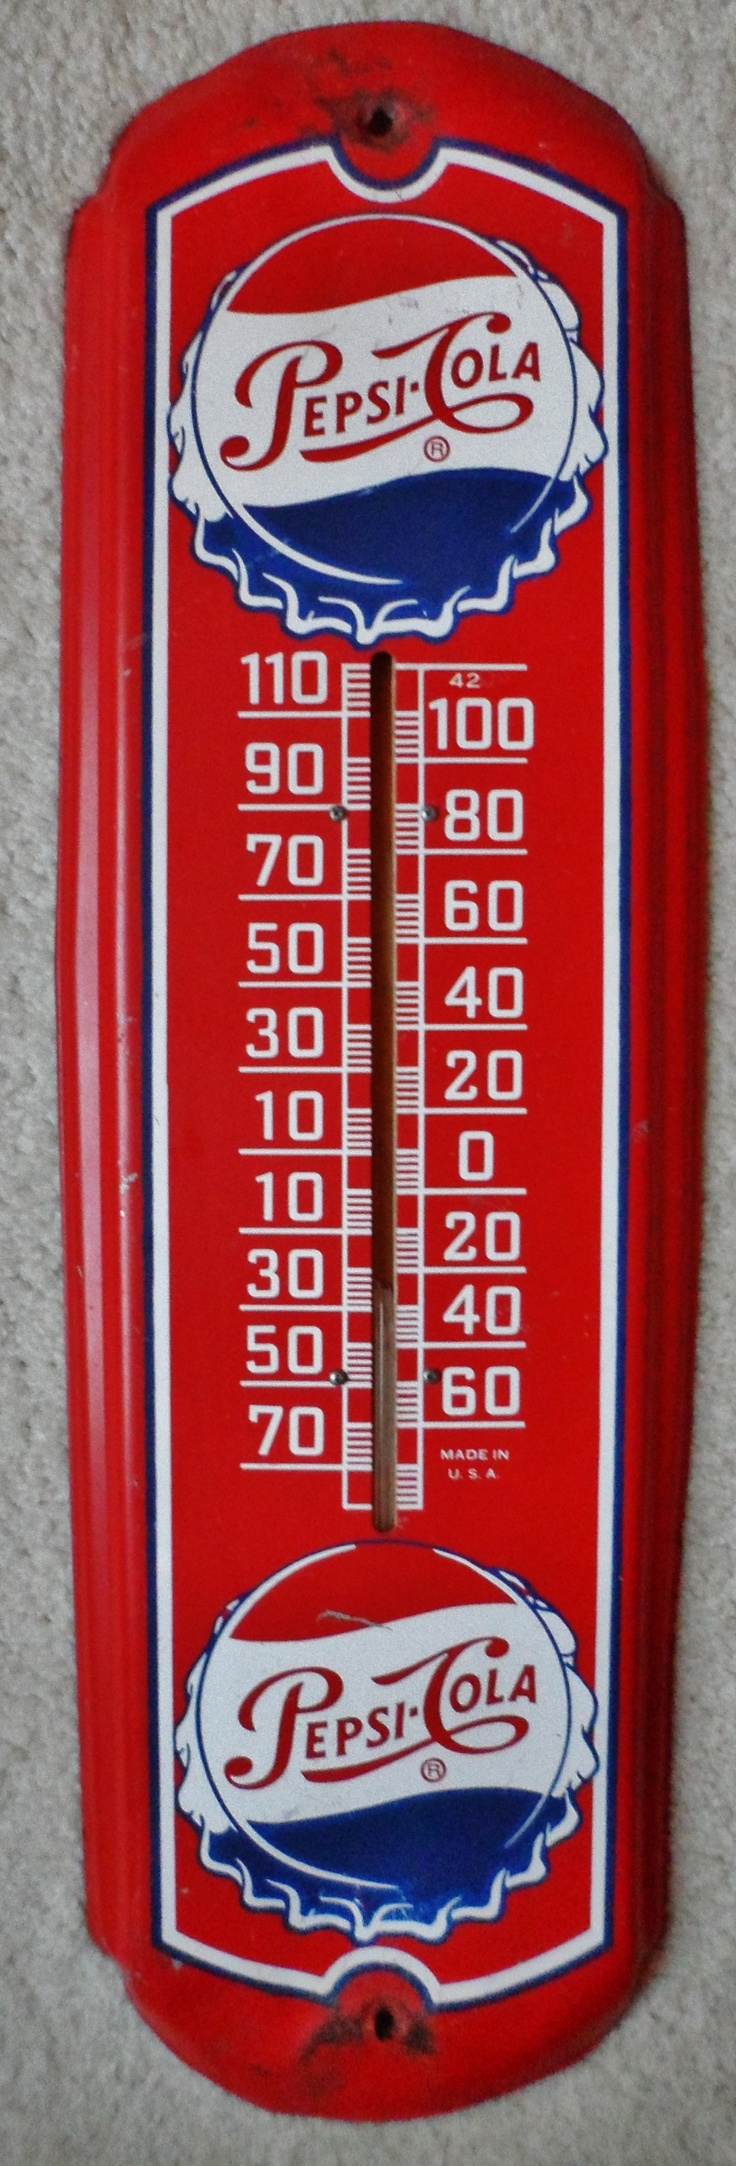 Vintage Pepsi Cola Thermometer Advertising Sign, circa 1950's